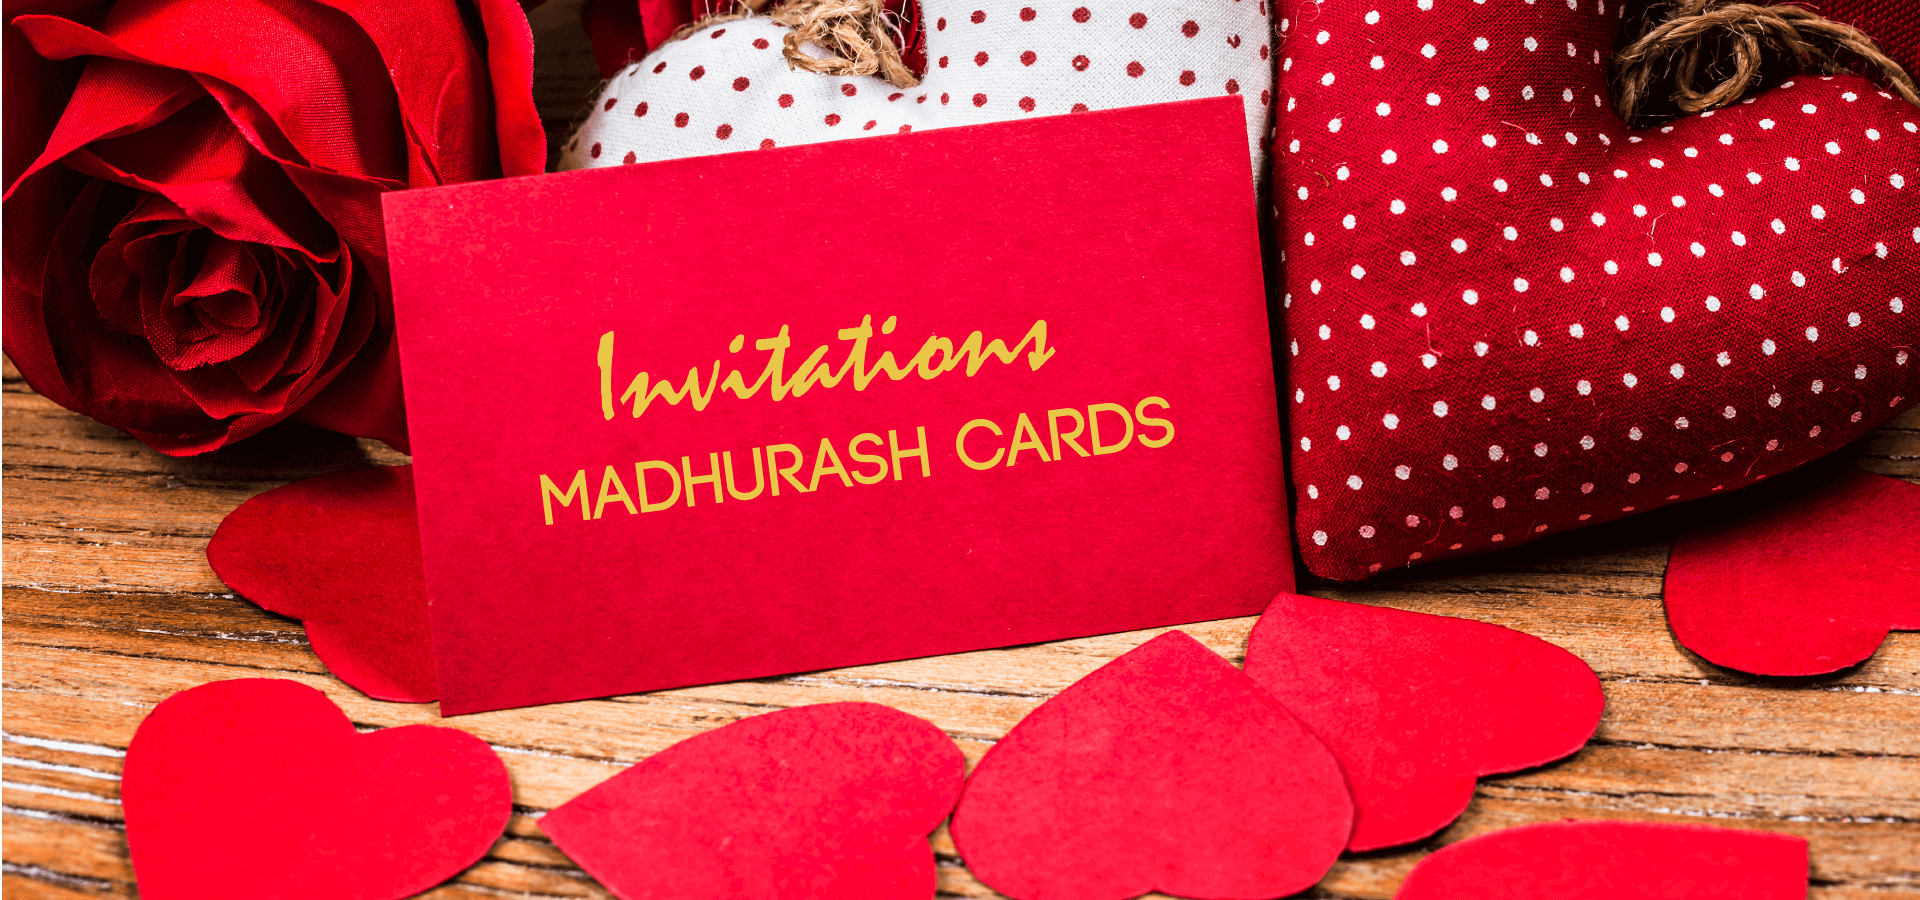 Ecommerce Development for Madhurash Cards